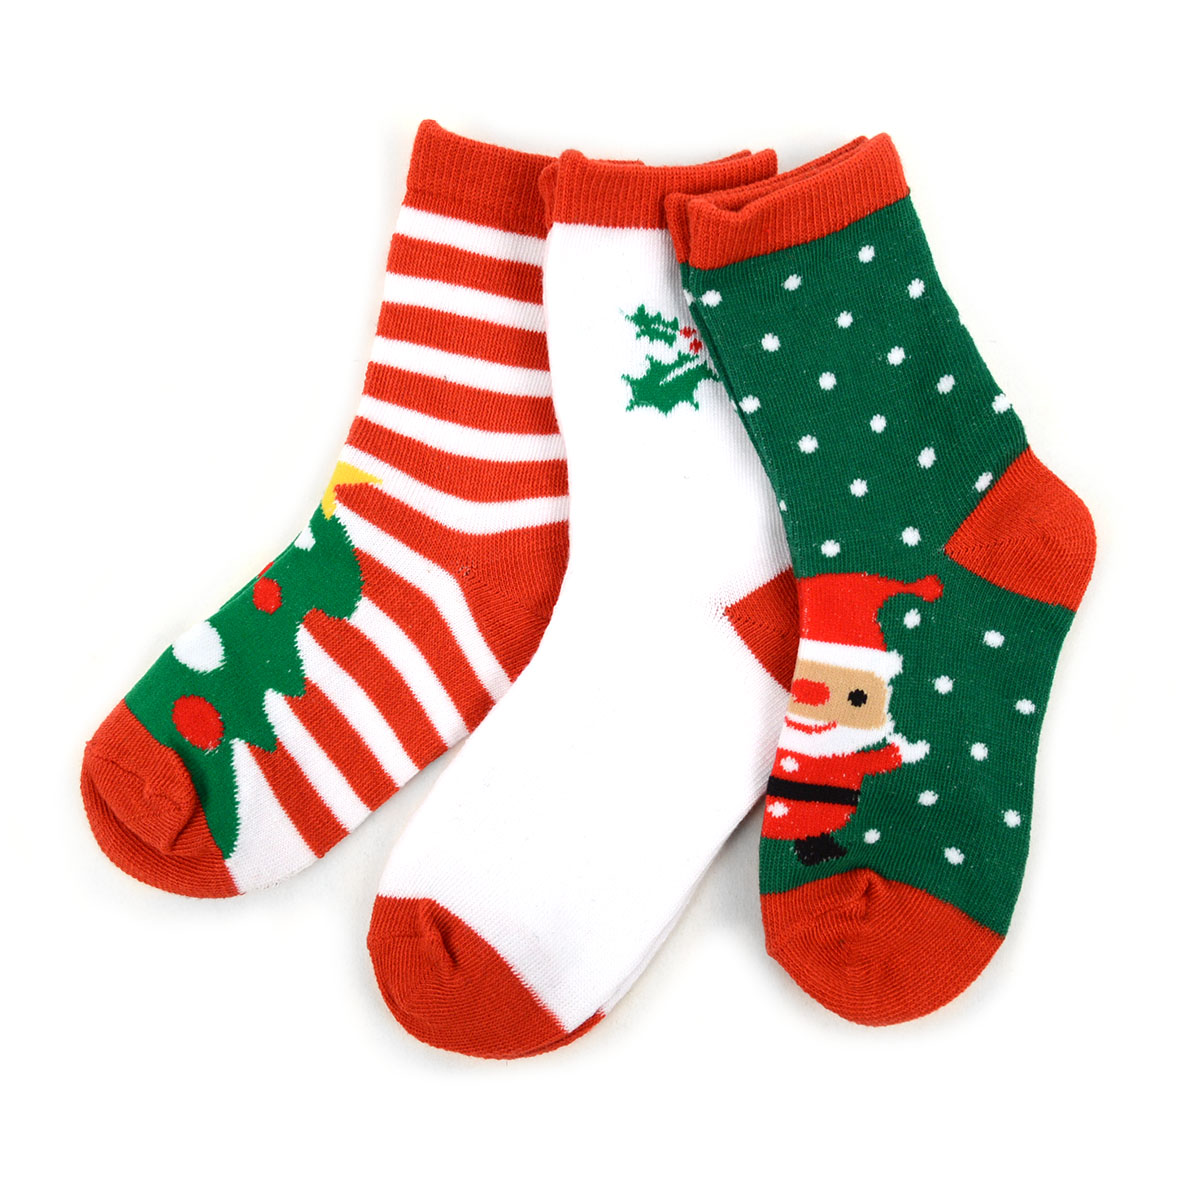 51e7e0d585f Kids Christmas Holidays Crew Socks 4-7 Yrs- 3 Pairs Pack - BOXED GIFTS